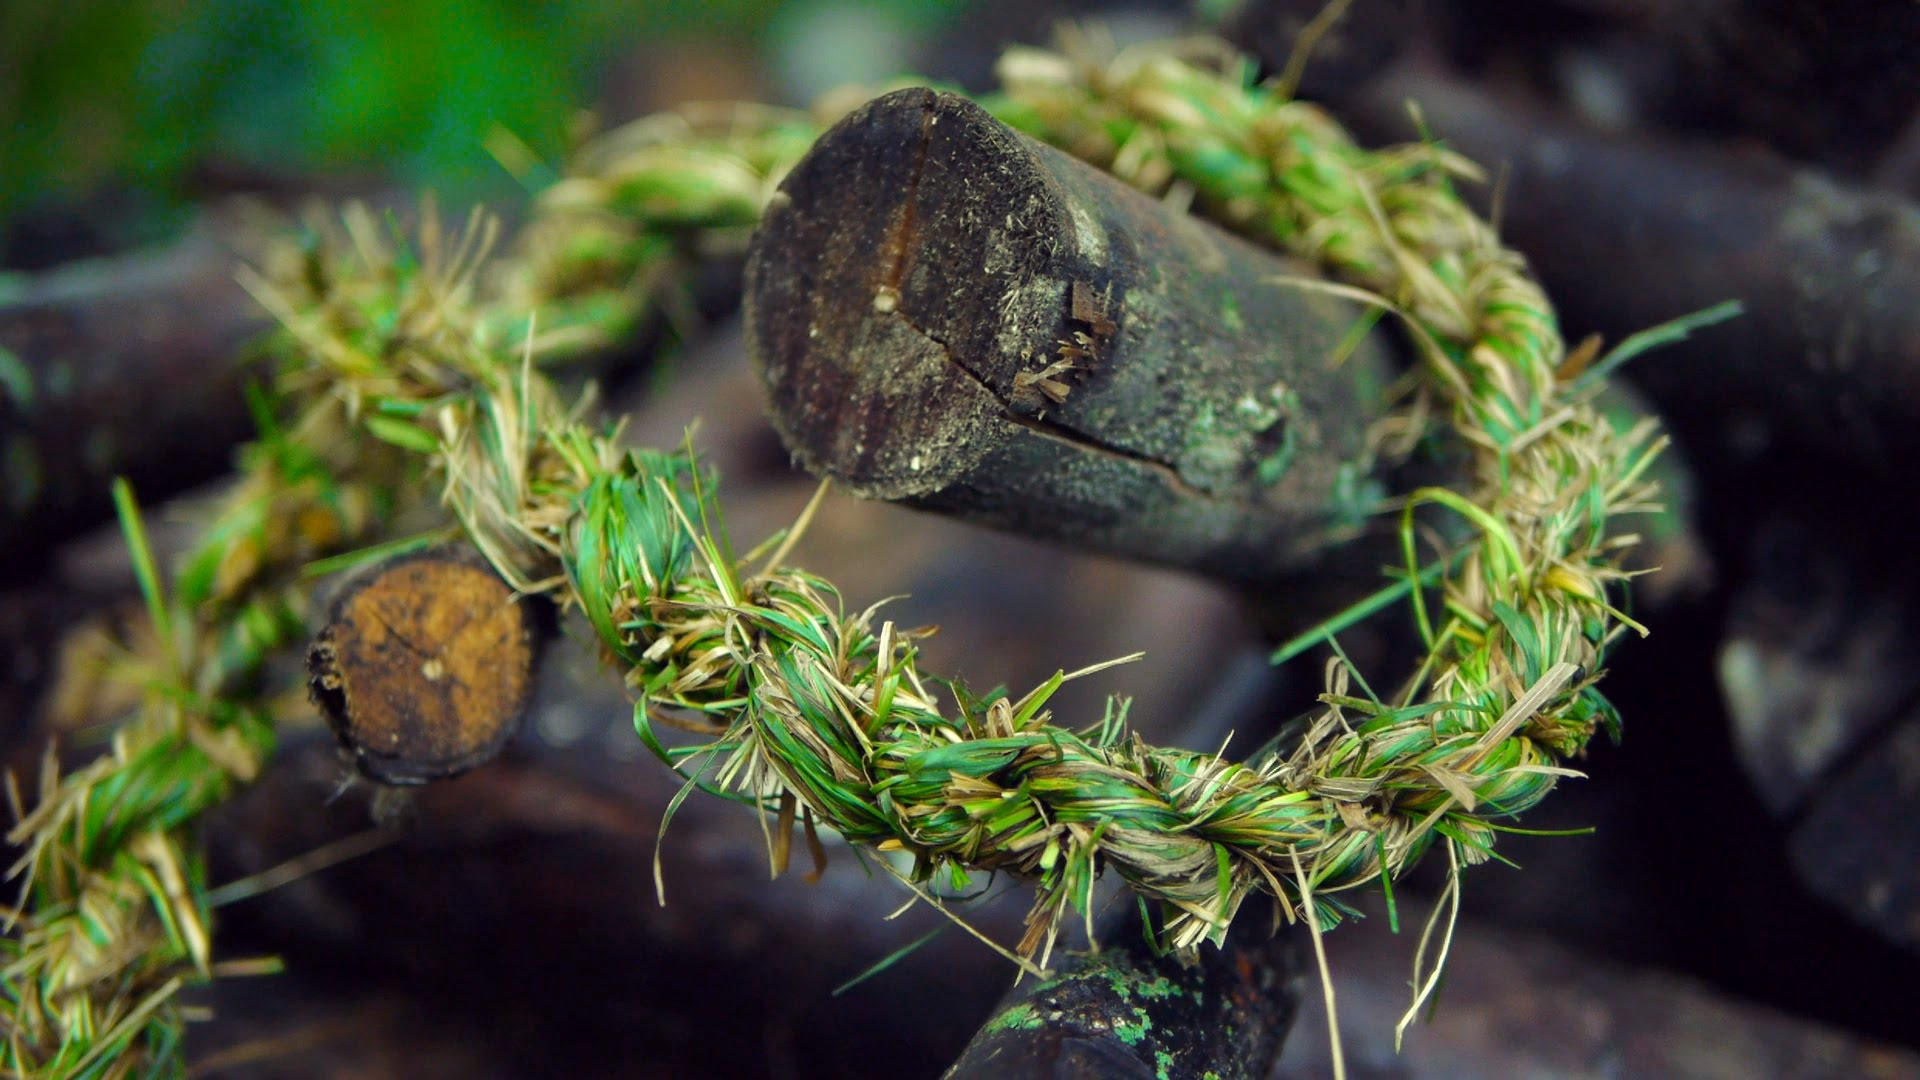 How To Make Rope From Grass   The Kid Should See This